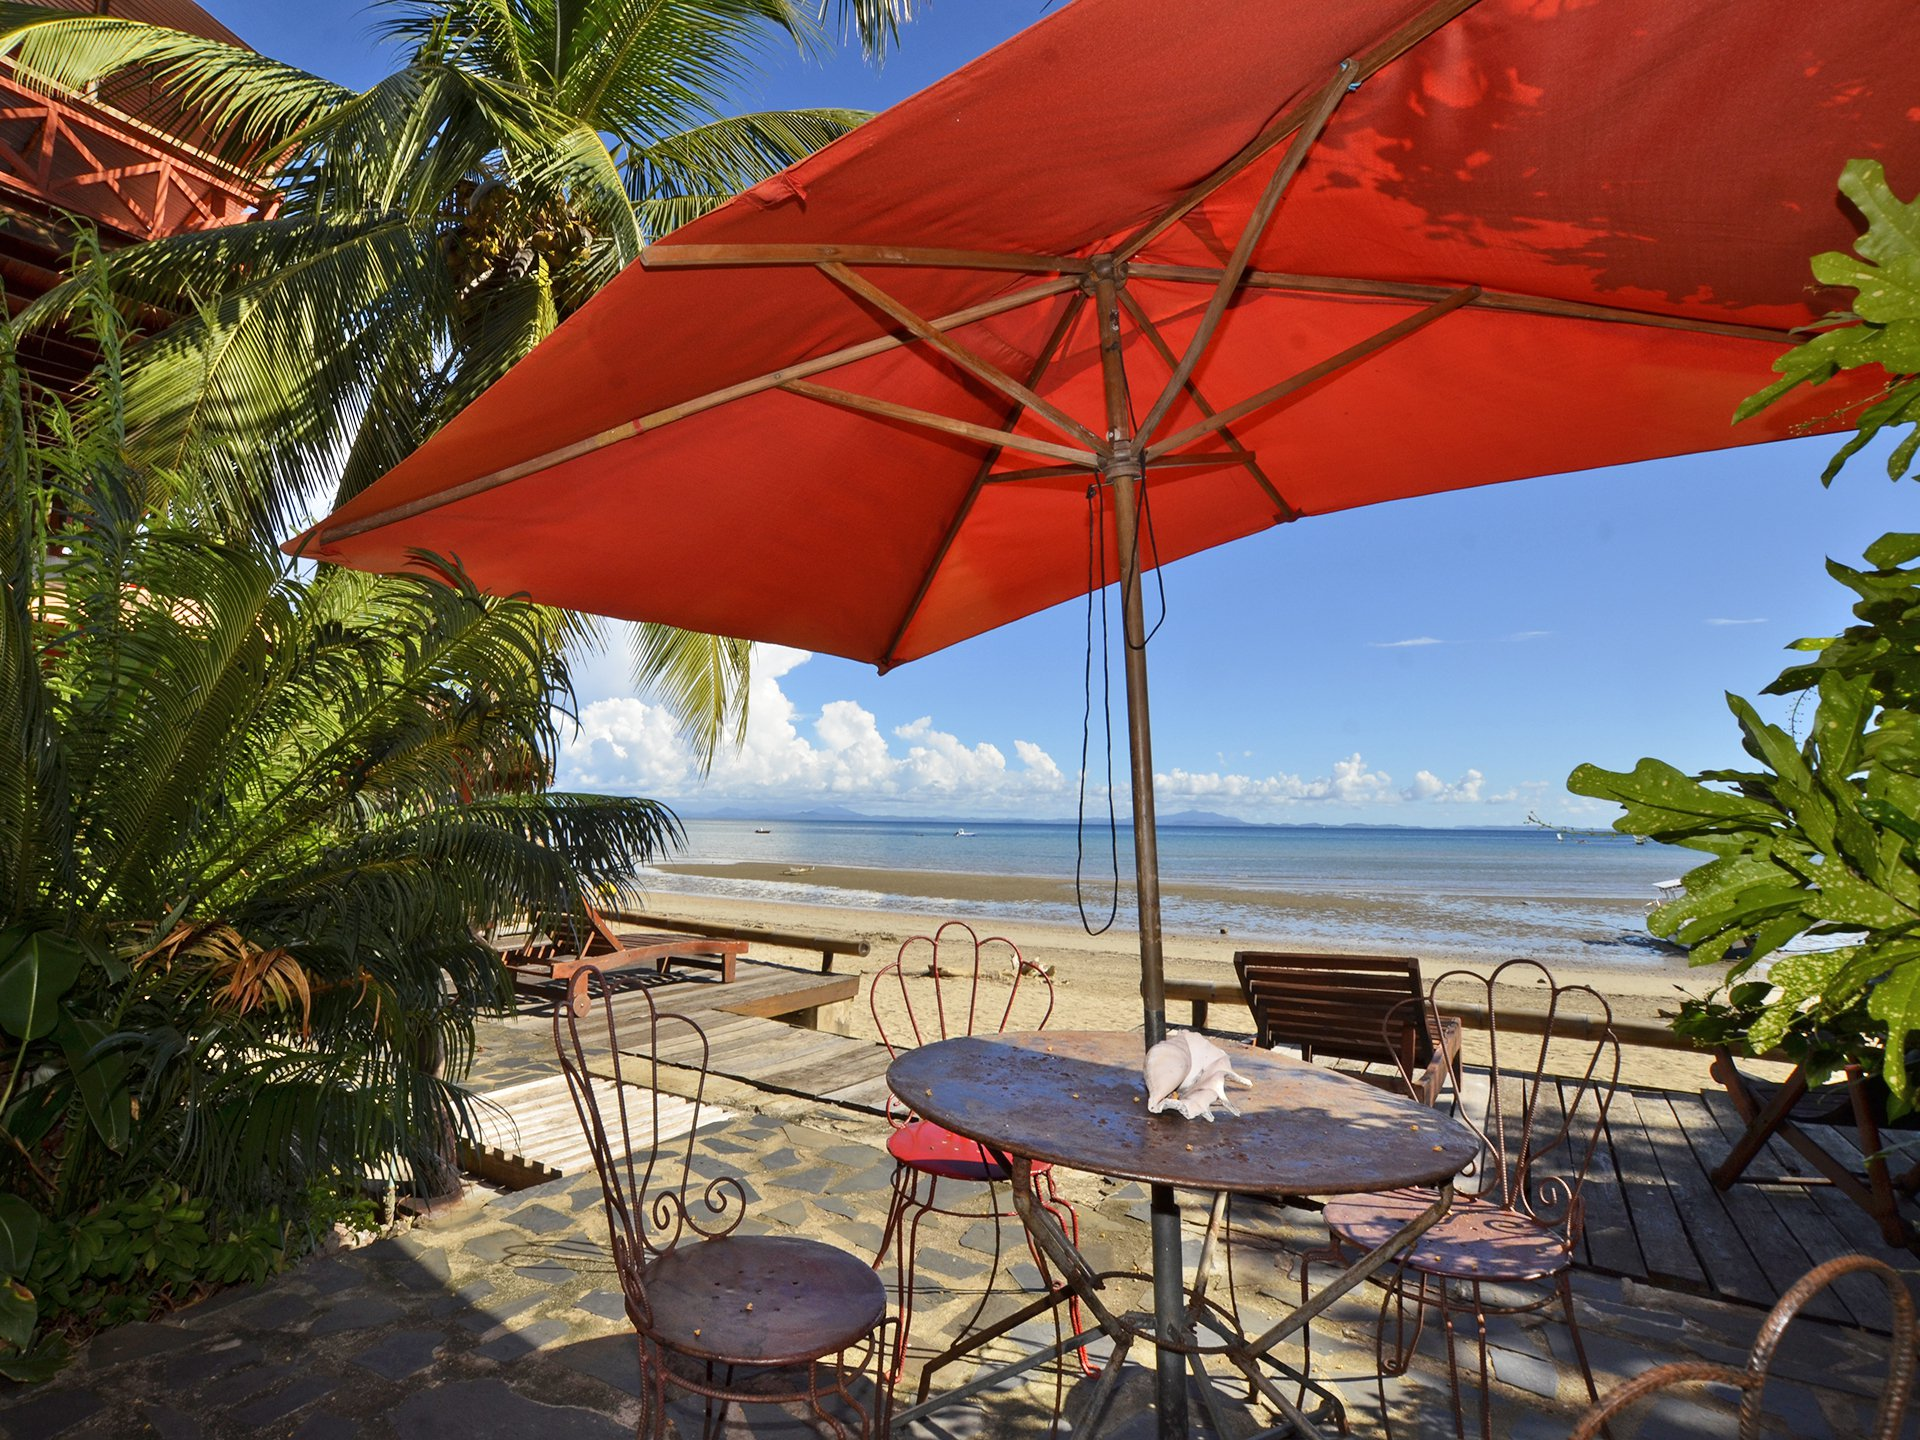 Sale Bed and breakfast - Nosy Be - Madagascar